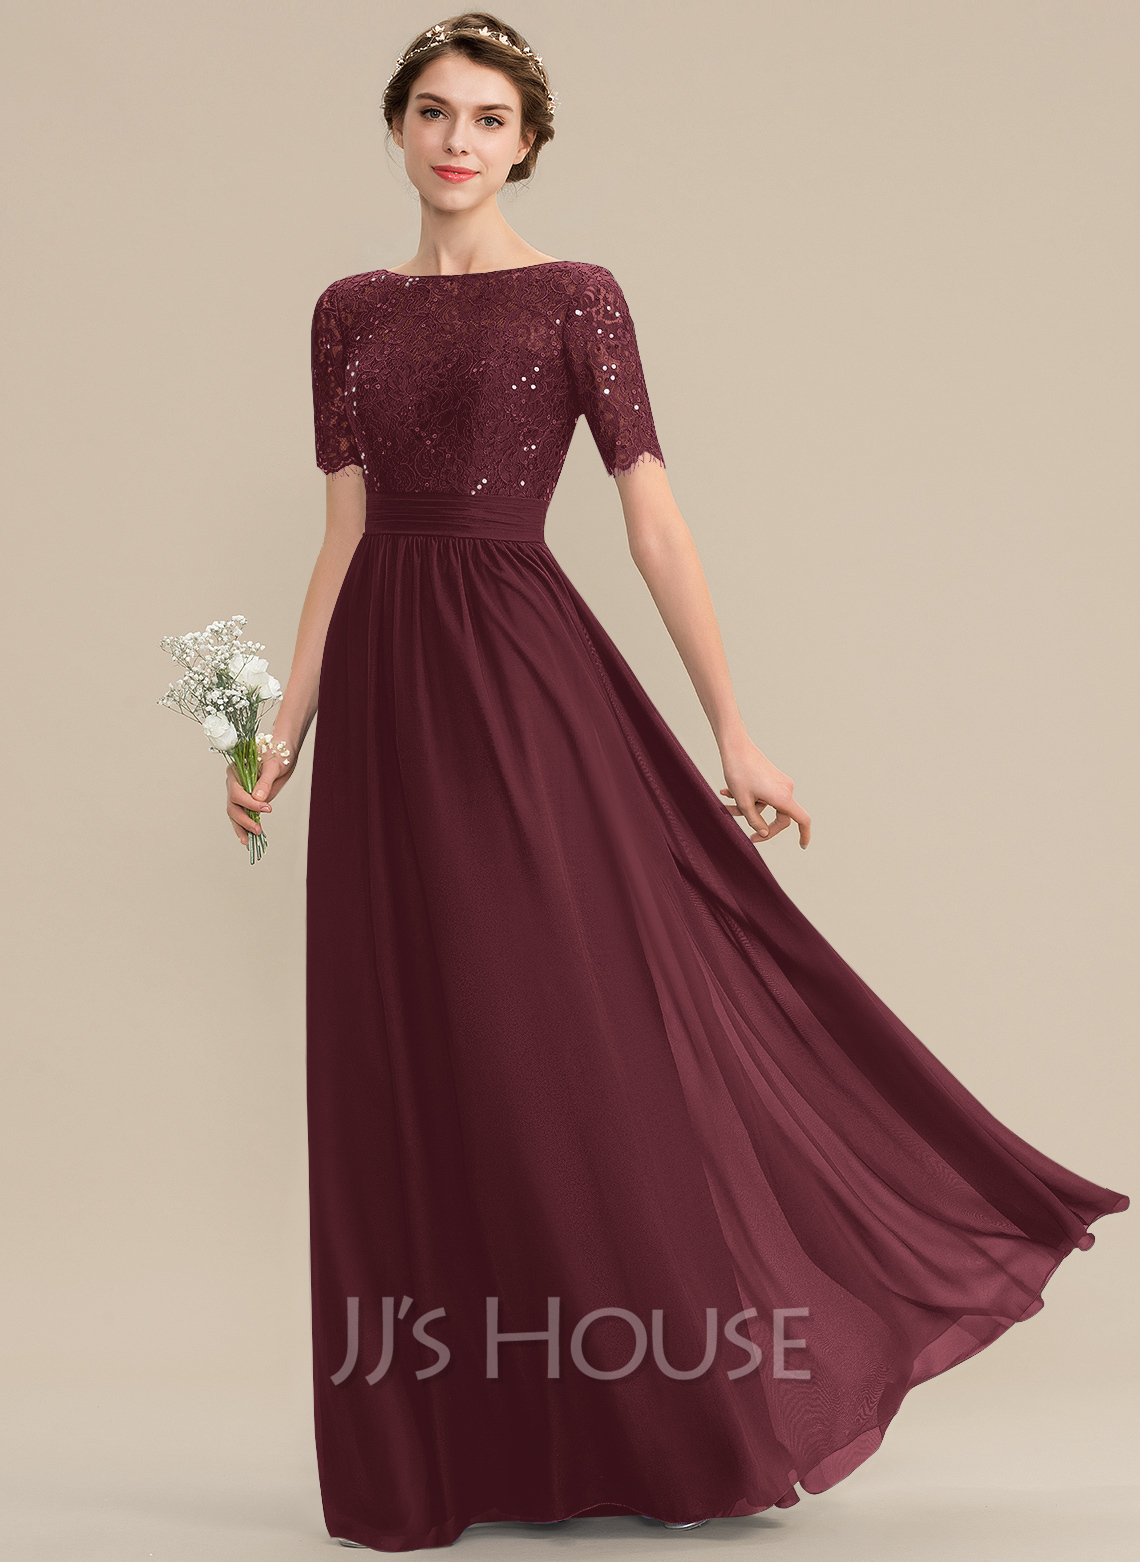 Scoop Neck Floor-Length Chiffon Lace Bridesmaid Dress With Sequins